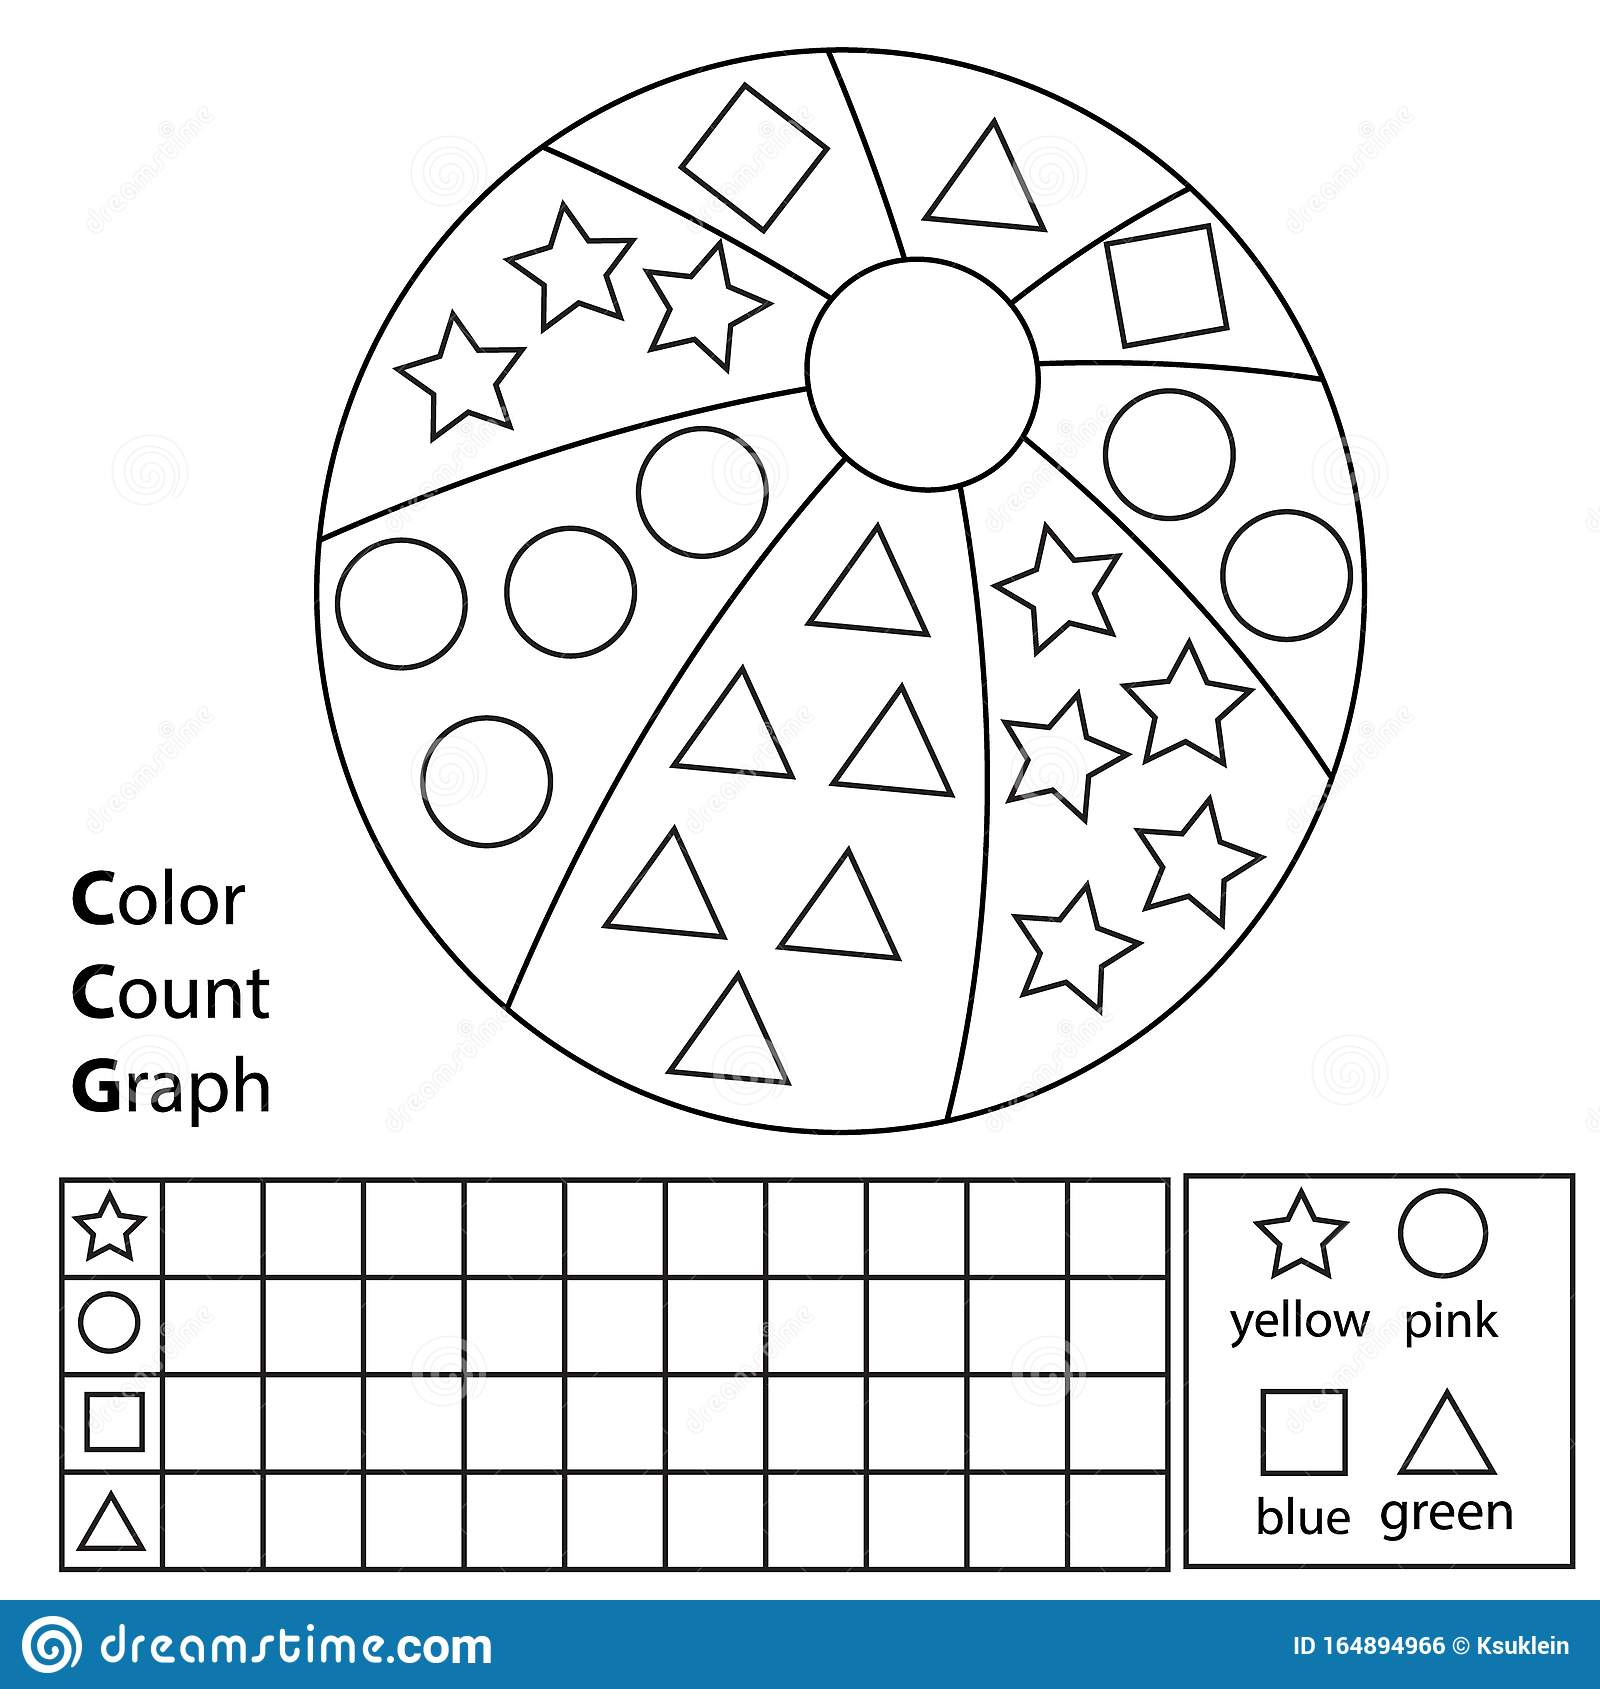 Color Count And Graph Educational Children Game Color